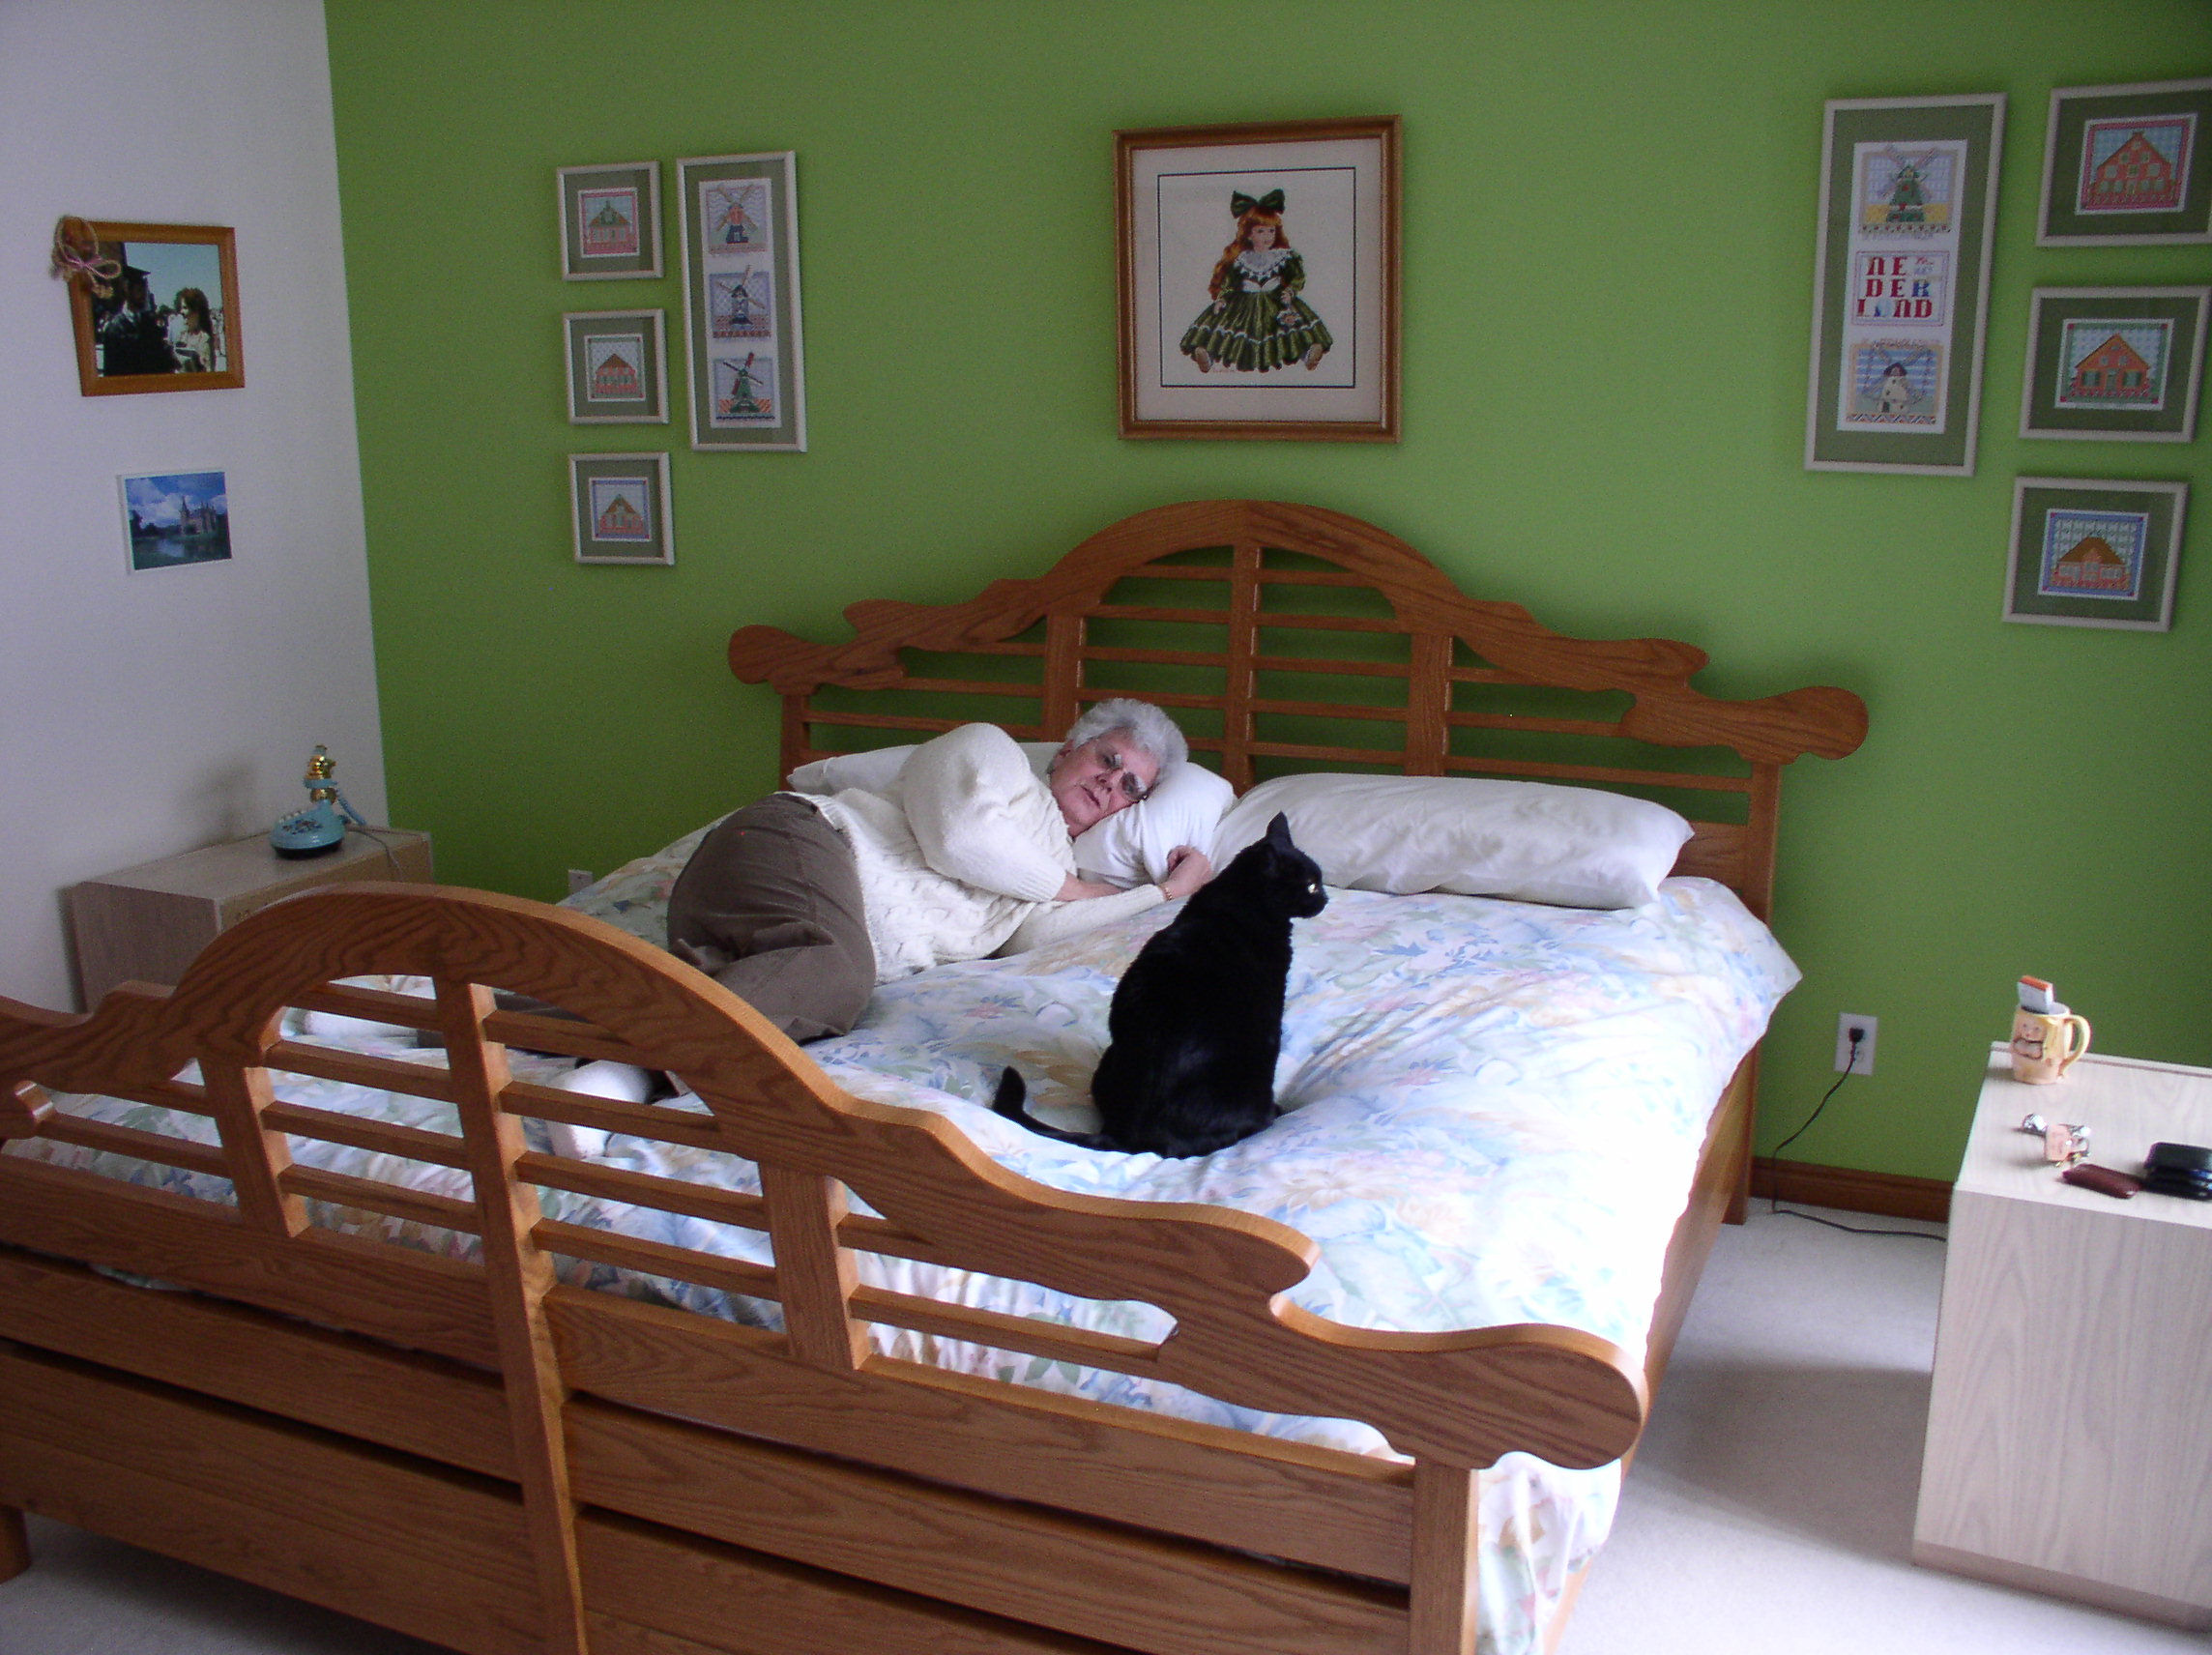 35: King Size Bed Used. High Resolution (671 KB)